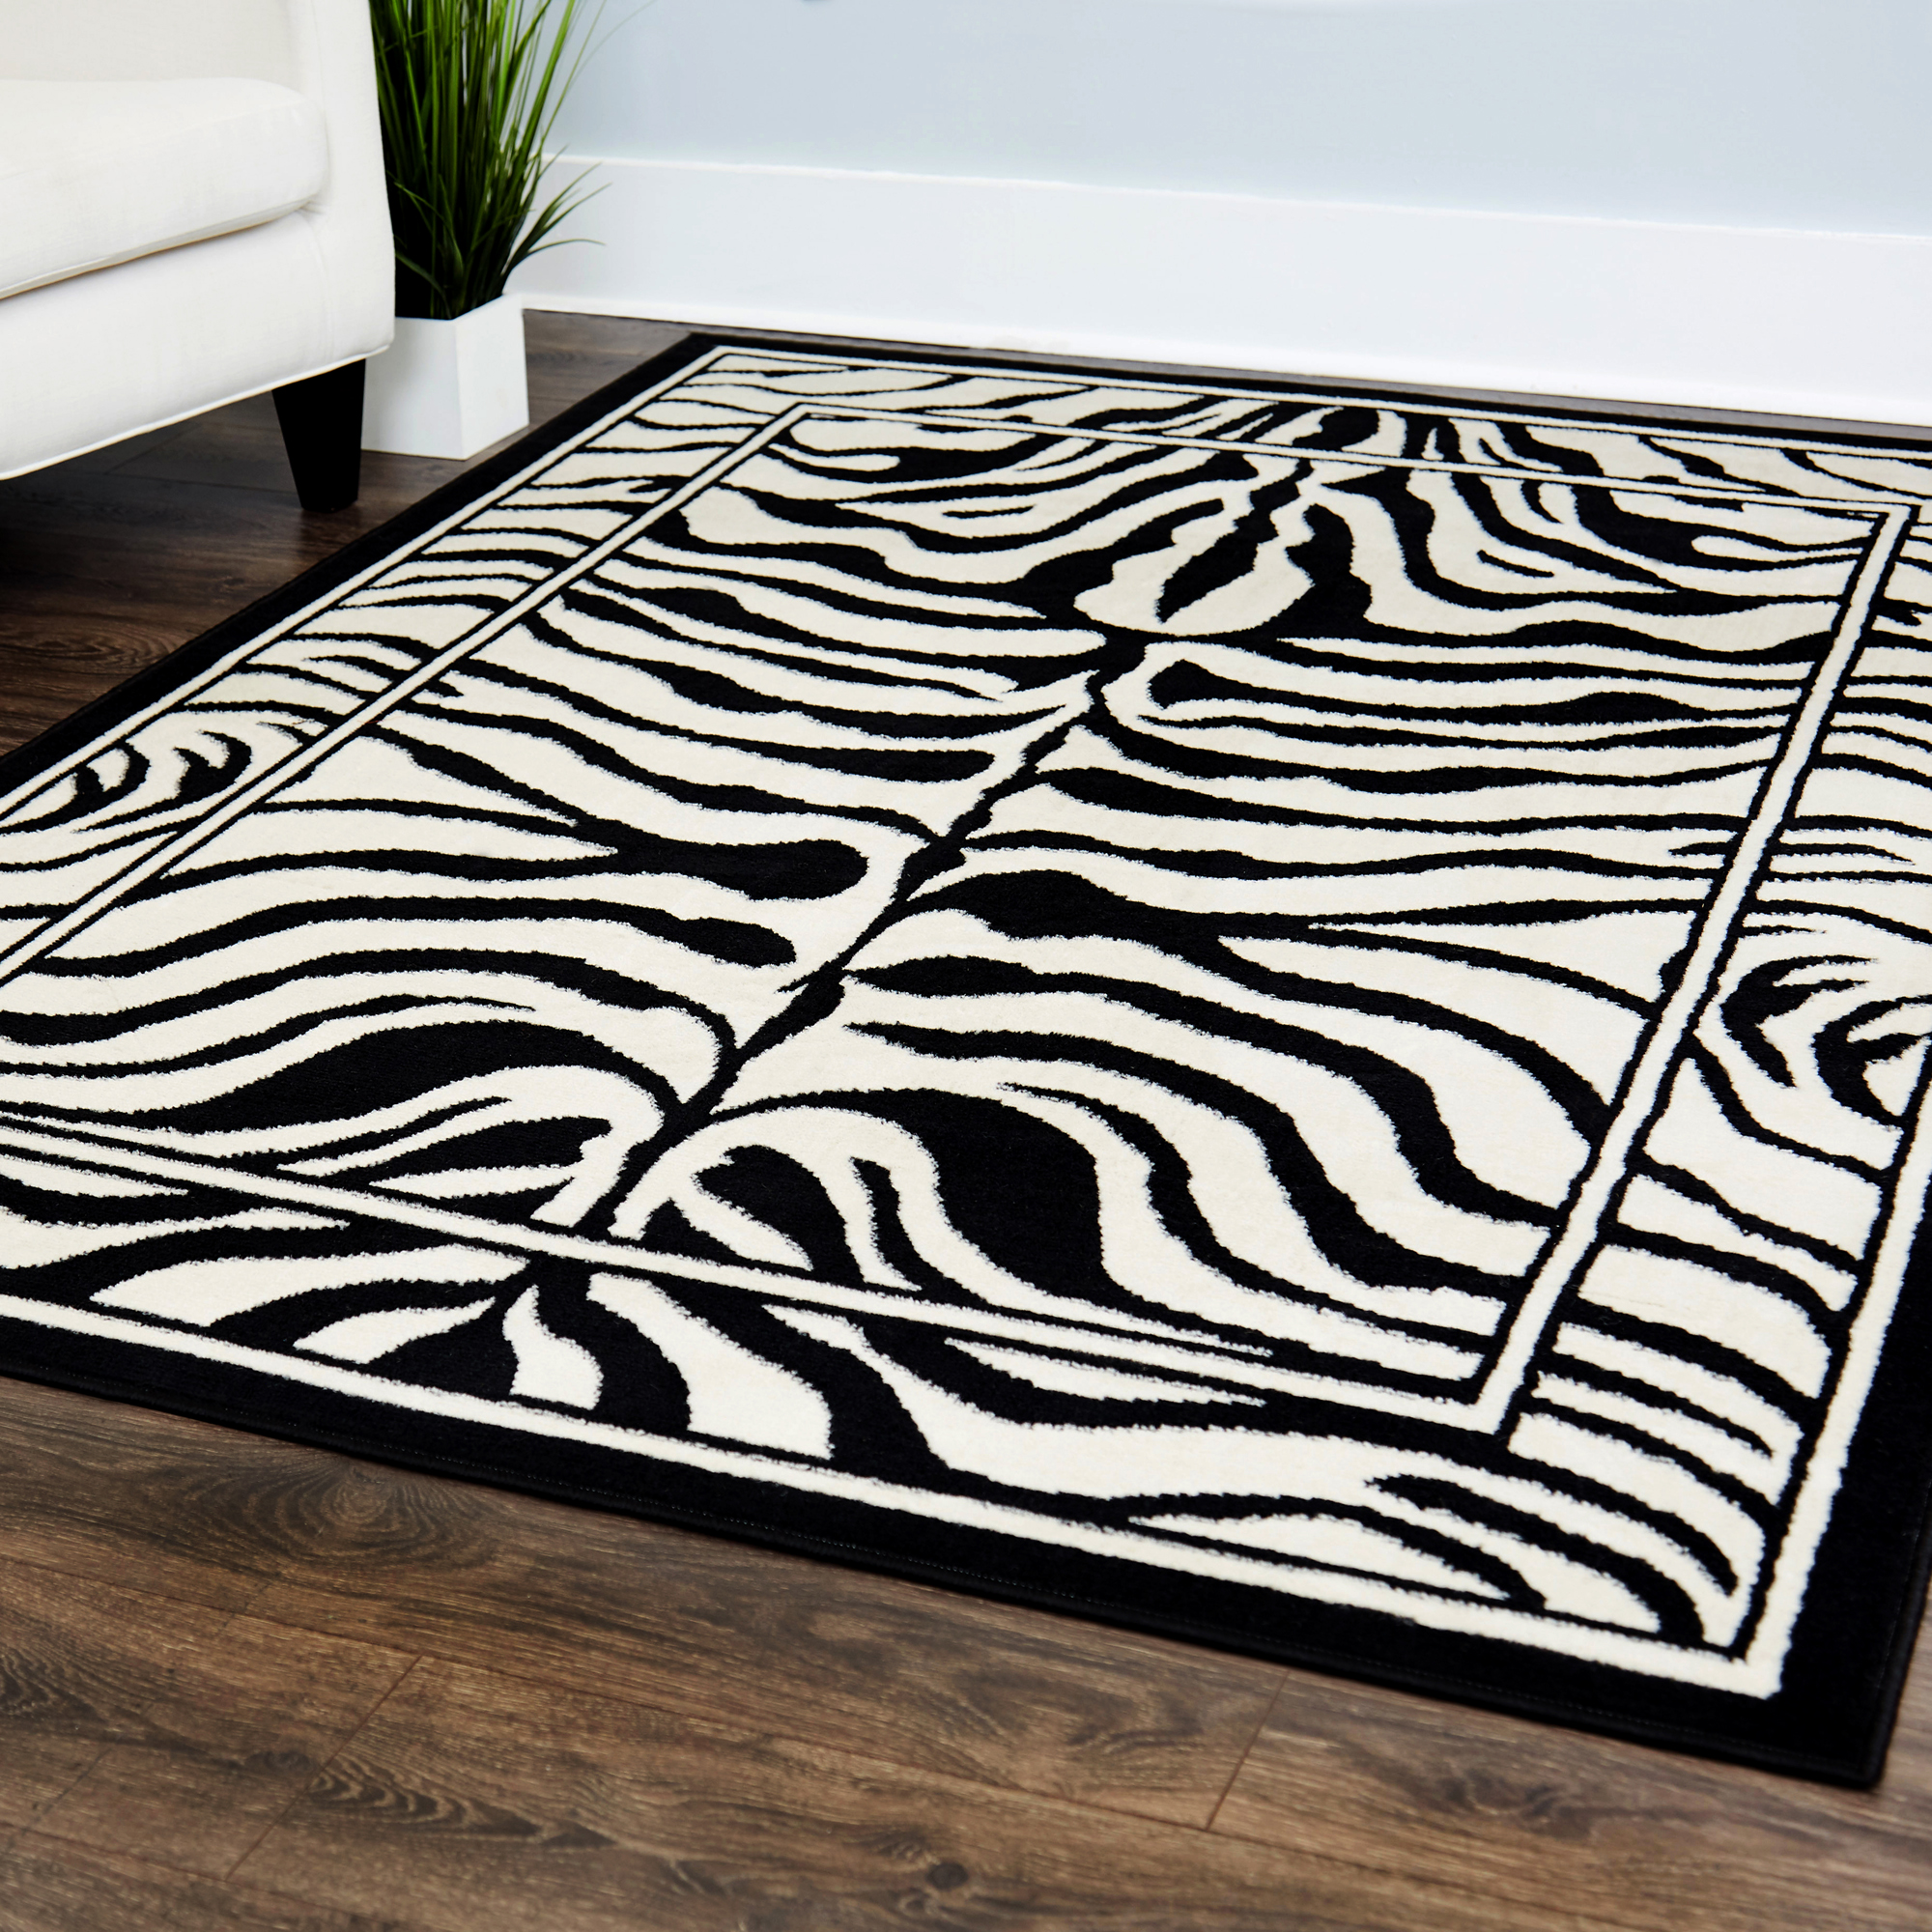 Contemporary Zebra Skin Design Area Rug 8x11 Safari Carpet